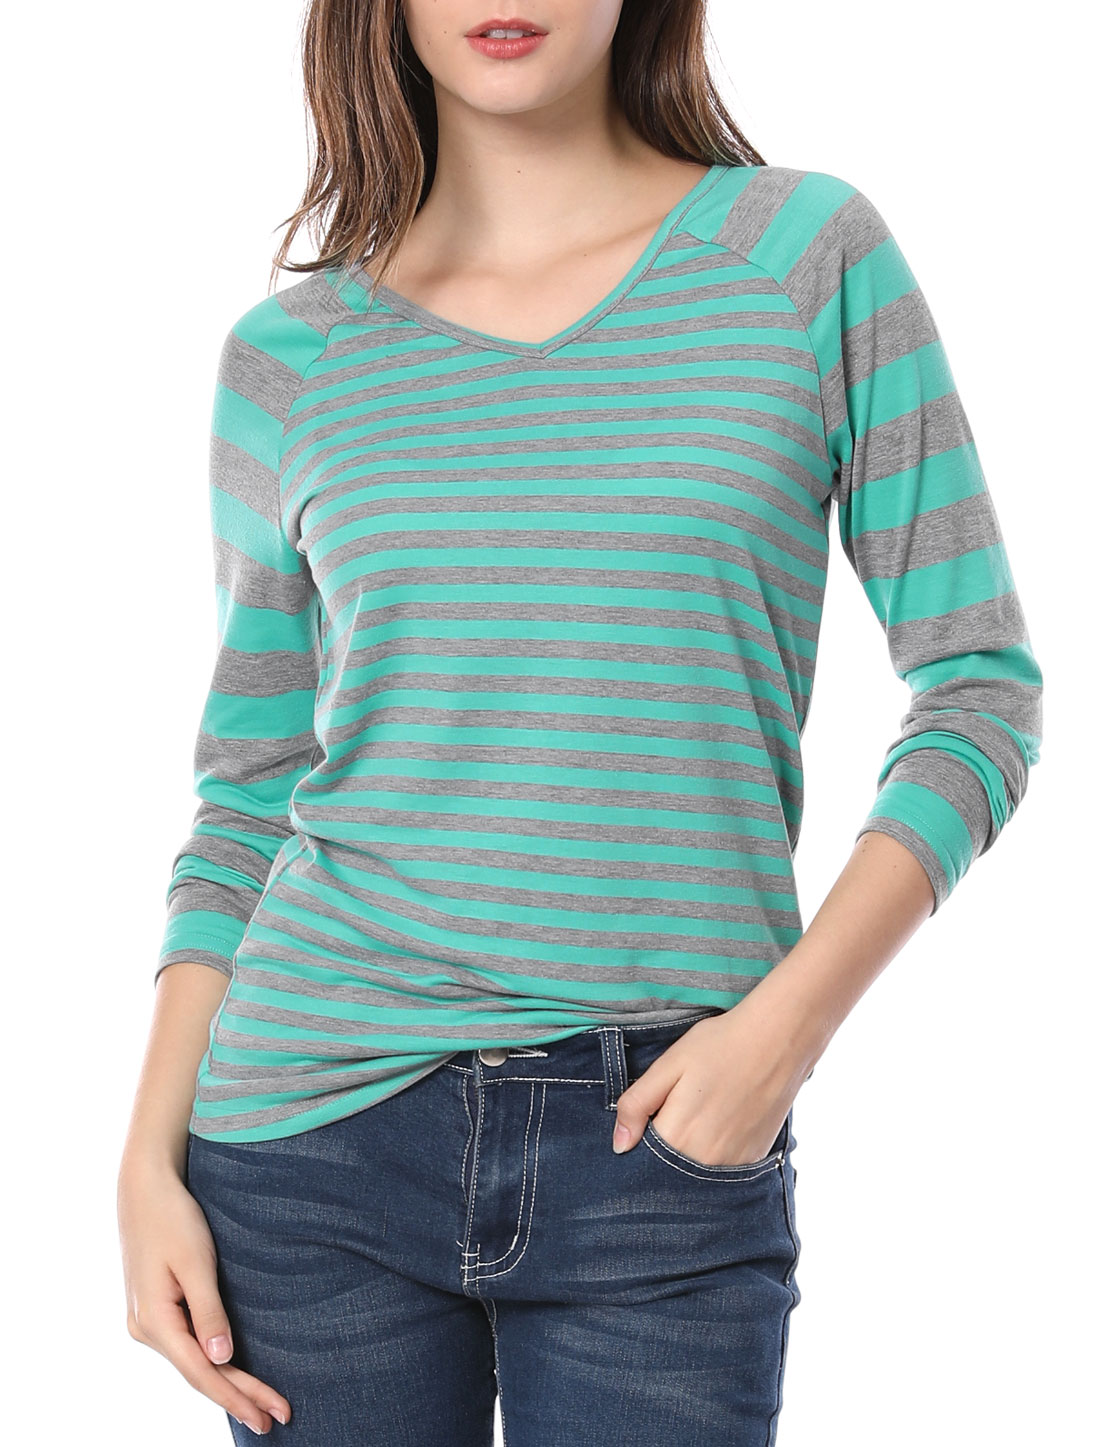 Women Striped Long Raglan Sleeves V Neck Top Green S